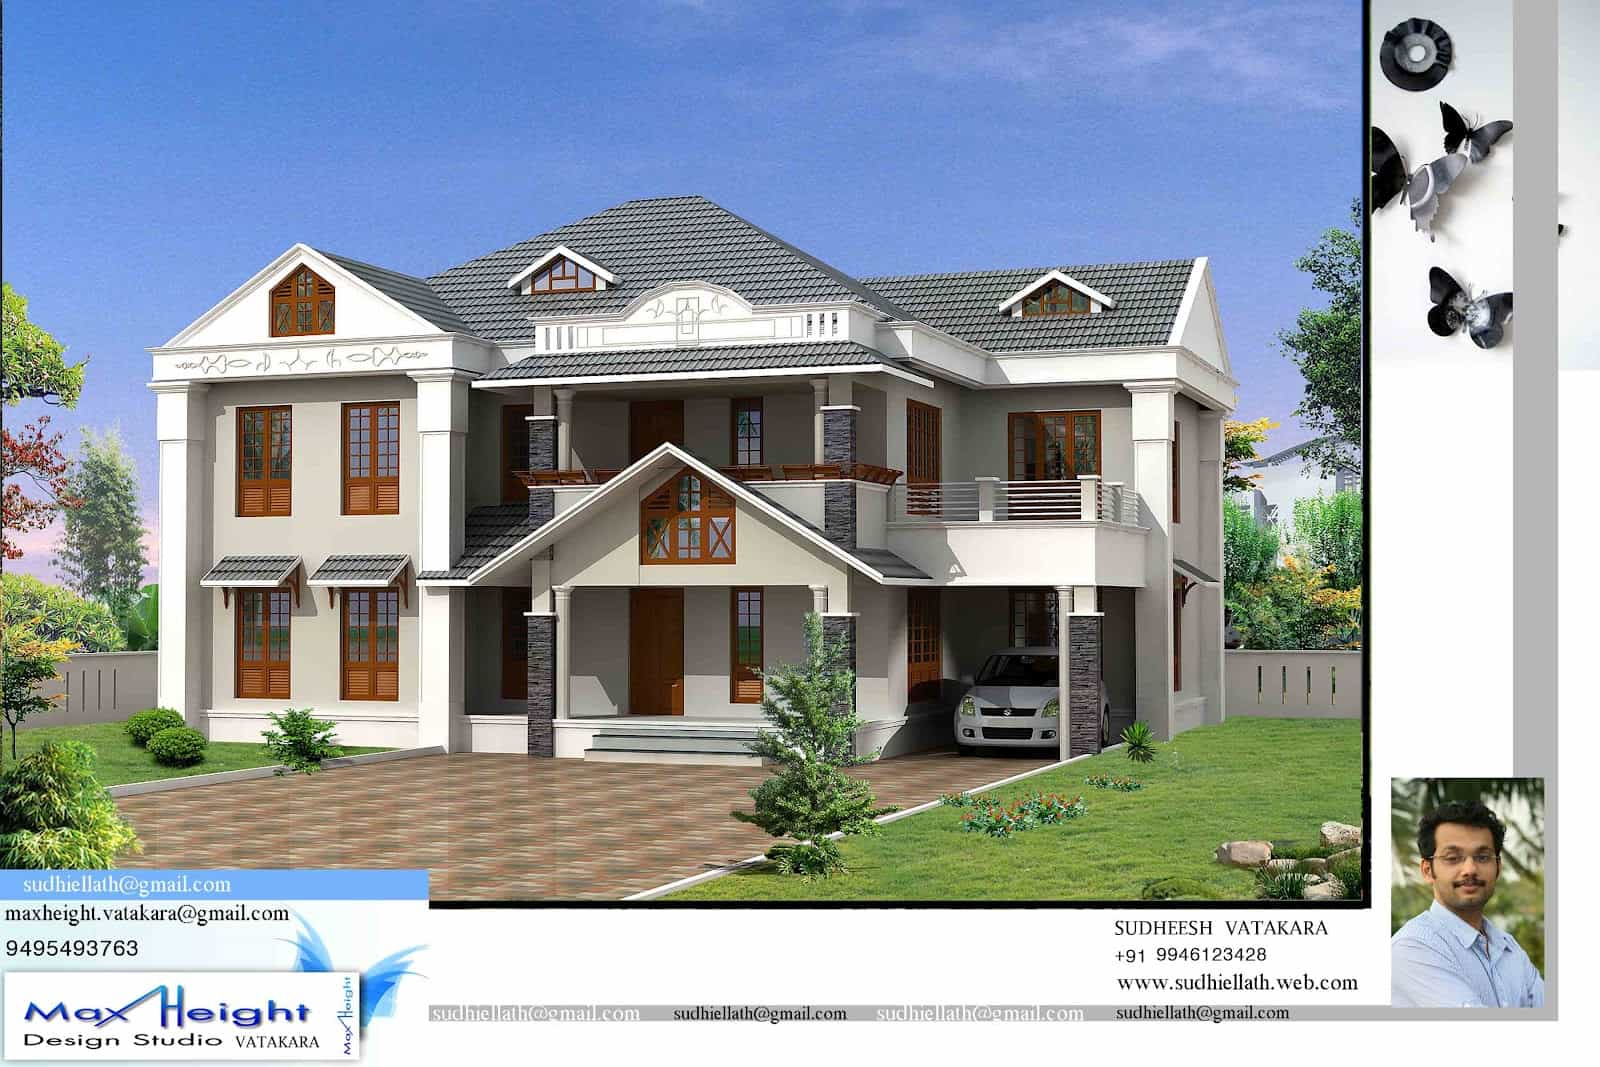 Single storey kerala house model with kerala house plans for Kerala house model plan